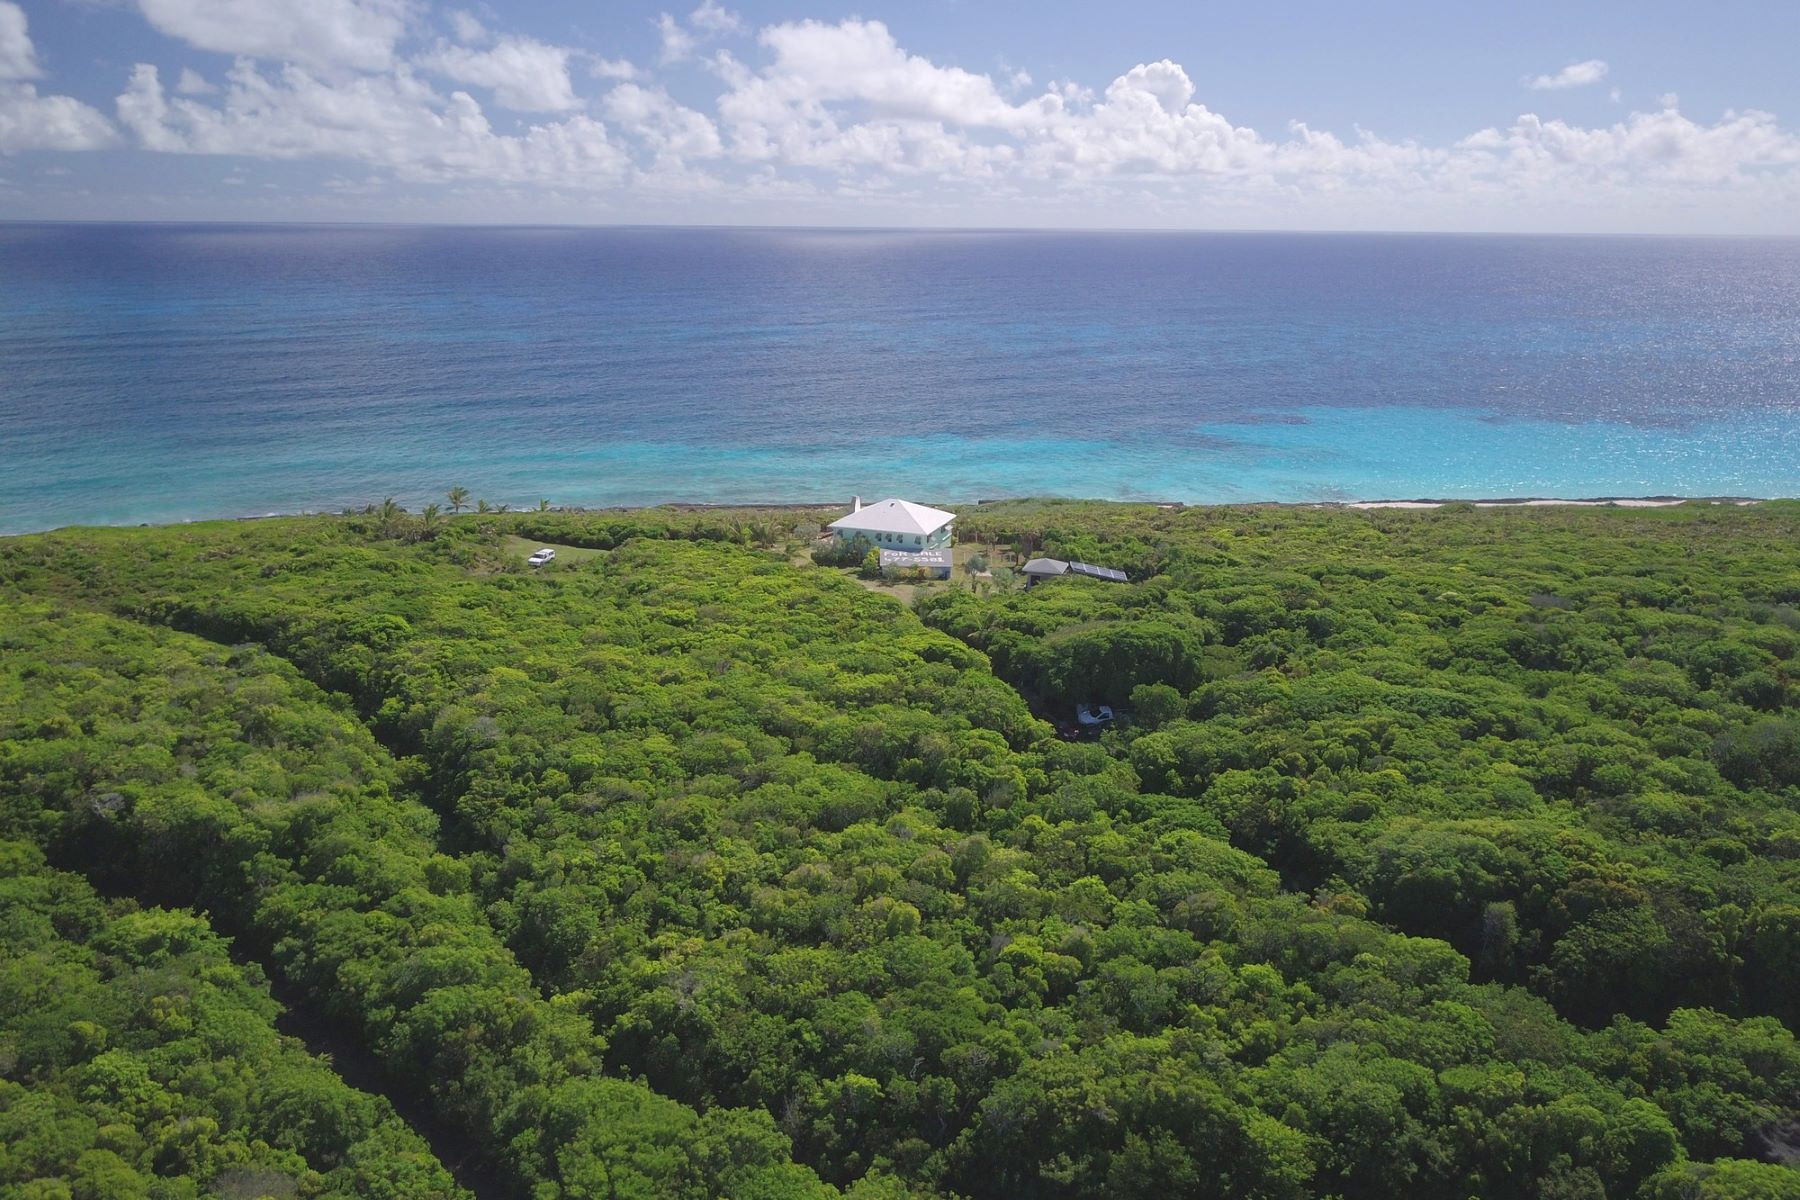 Villa per Vendita alle ore The Sweeting House at Joe Bookie's Bay Lot 9 & 10 Little Harbour, Abaco, Bahamas